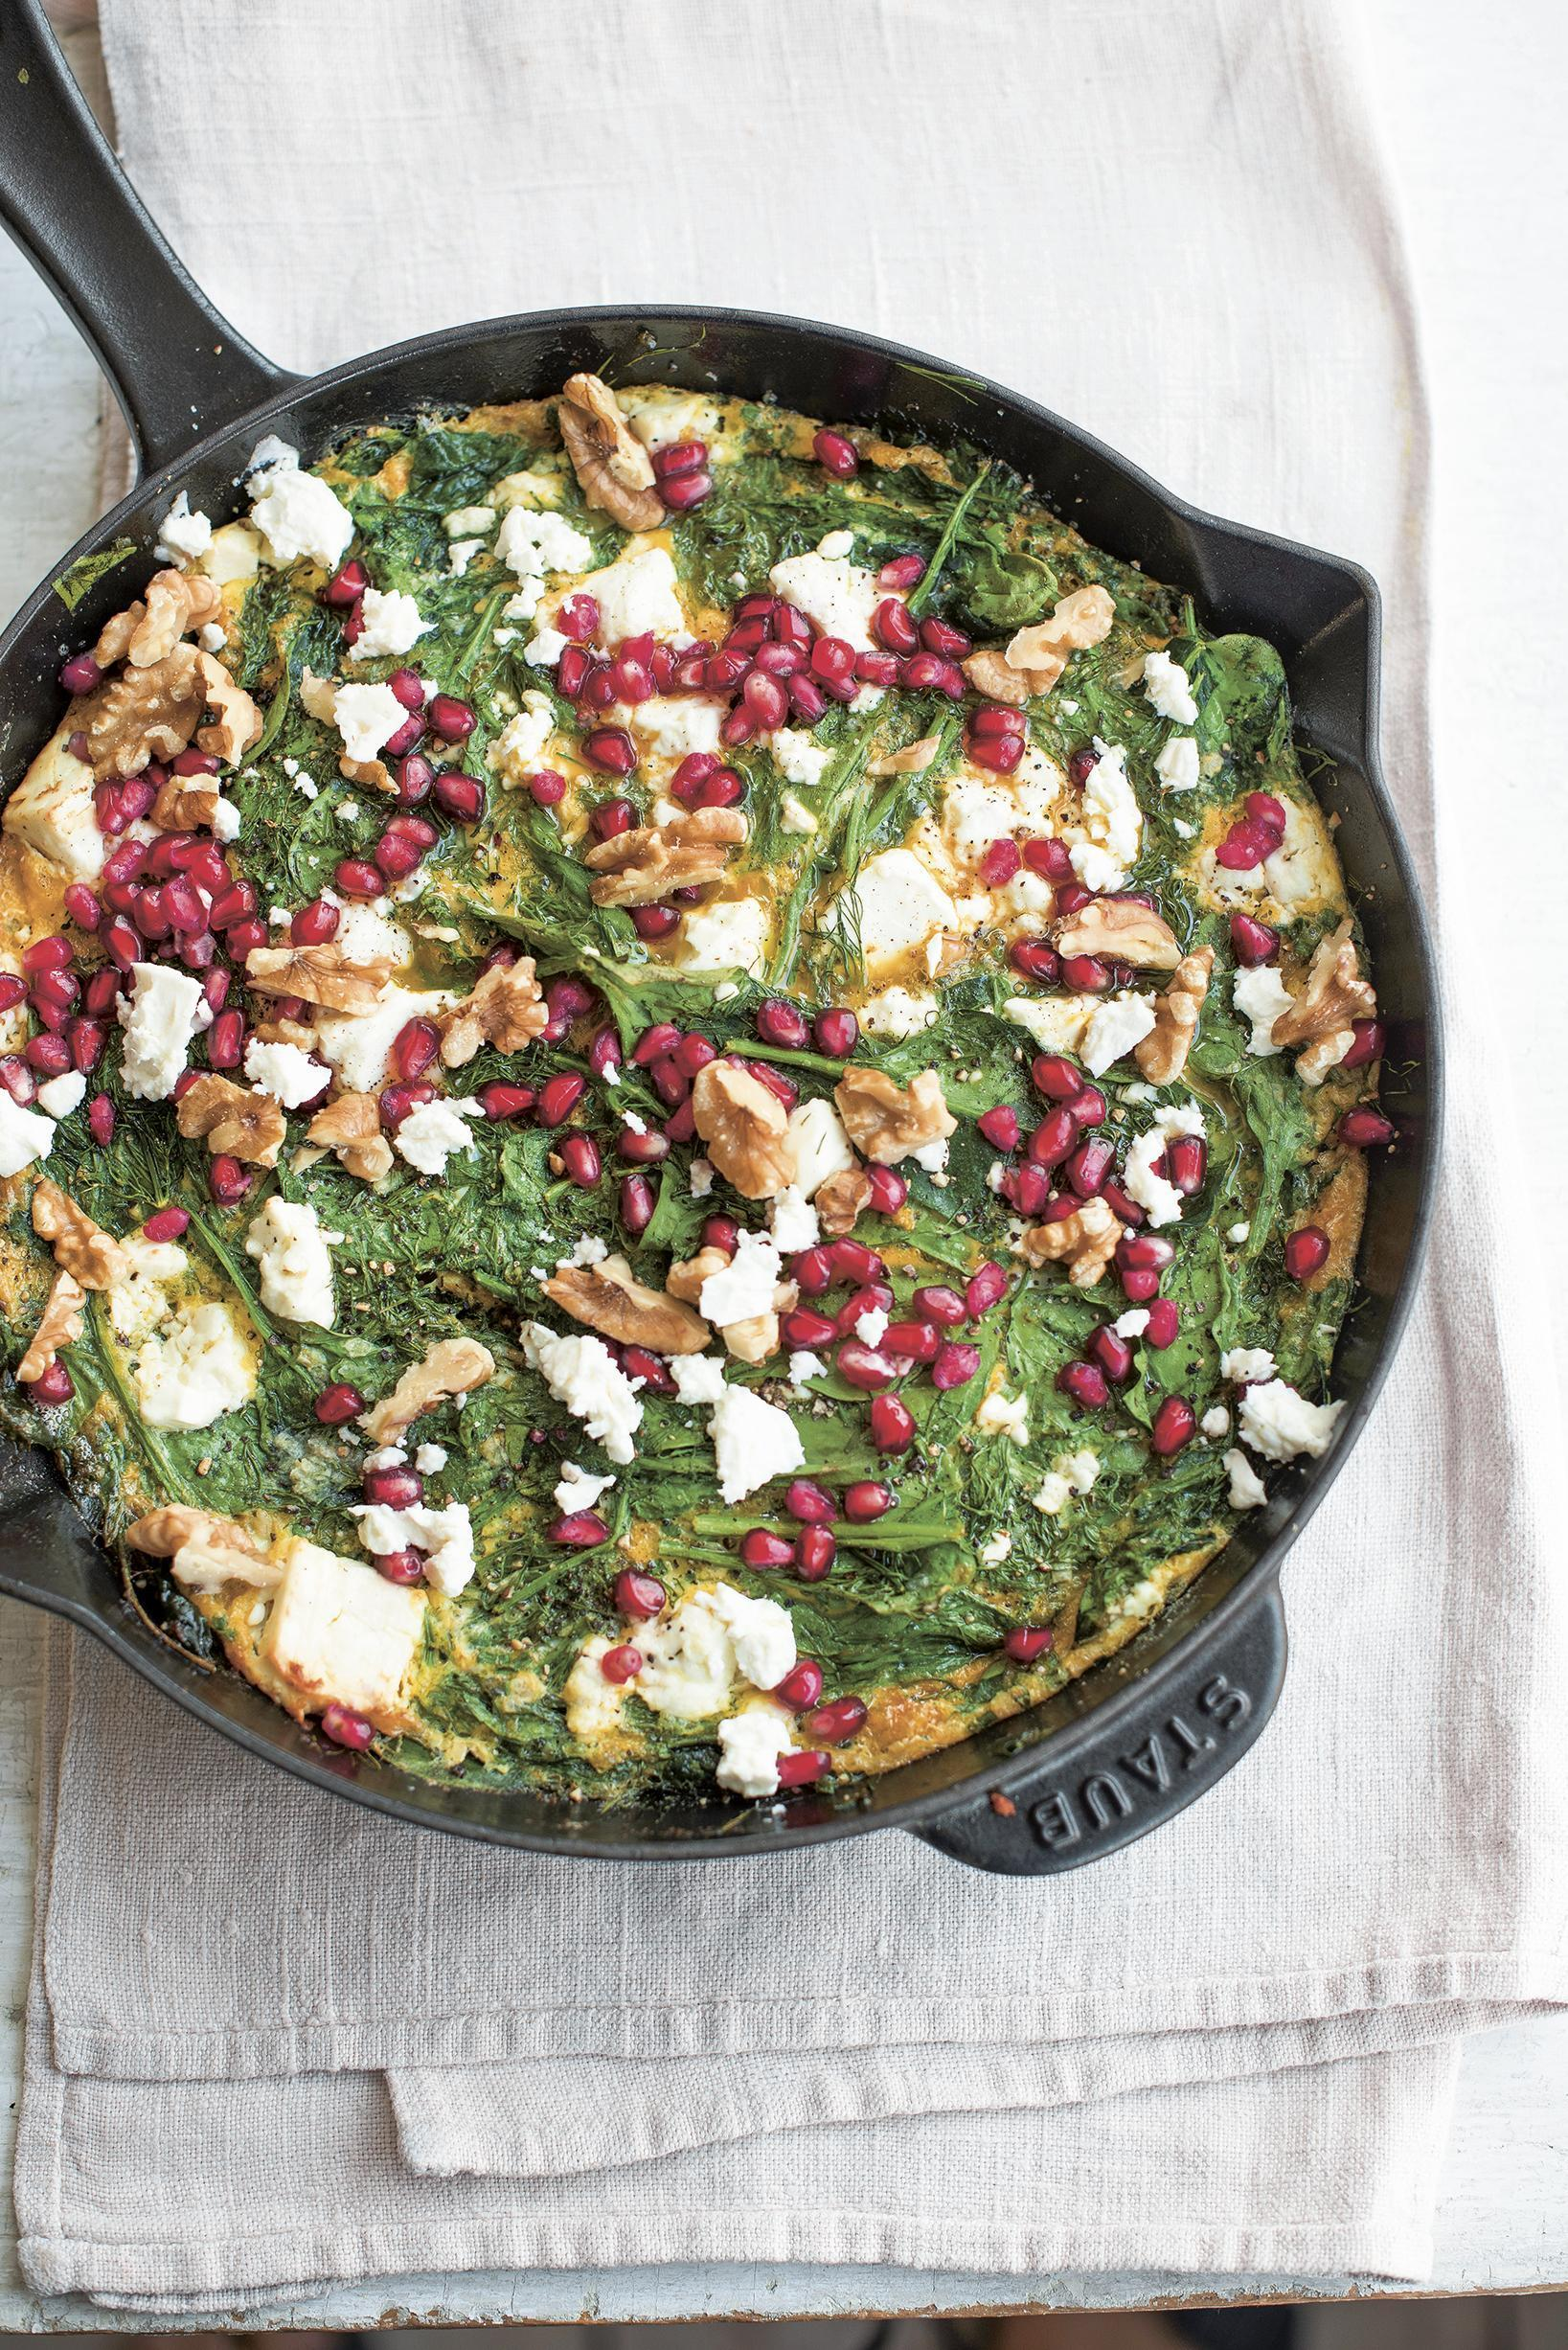 #1 Herby spinach and feta frittata